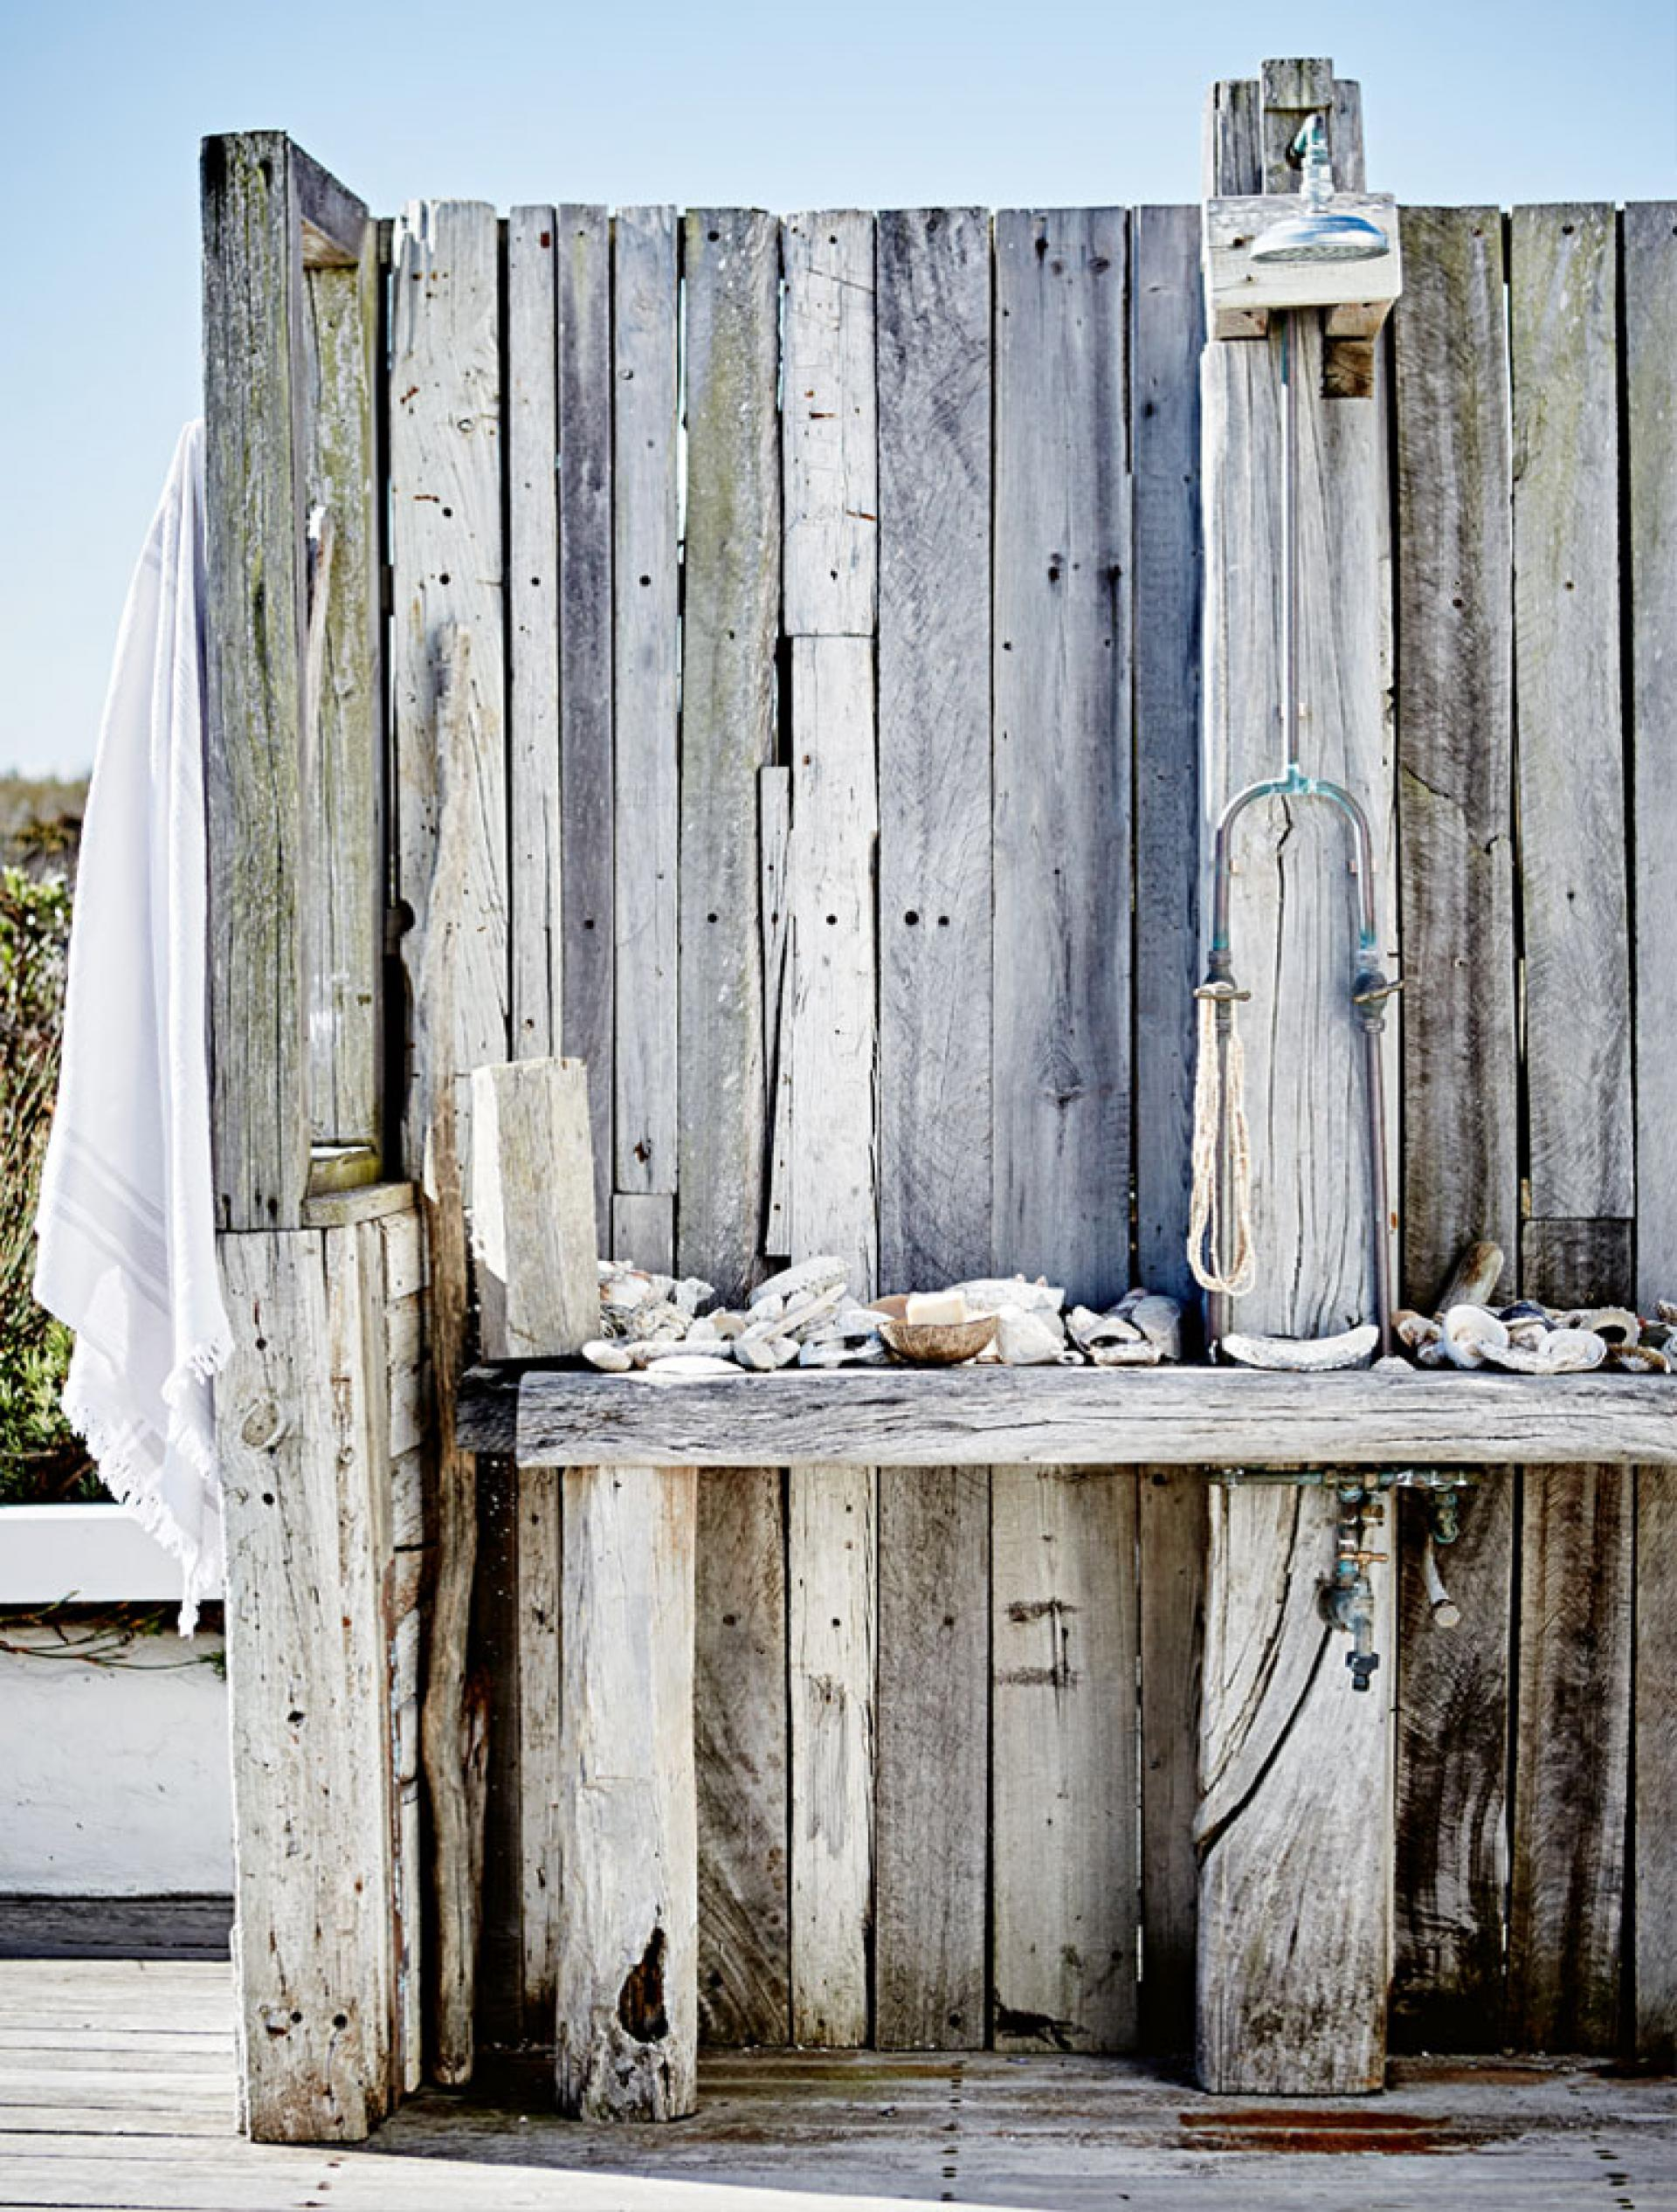 outdoor-shower-south-african-home-dec15-20151210094202-q75dx1920y-u1r1g0c